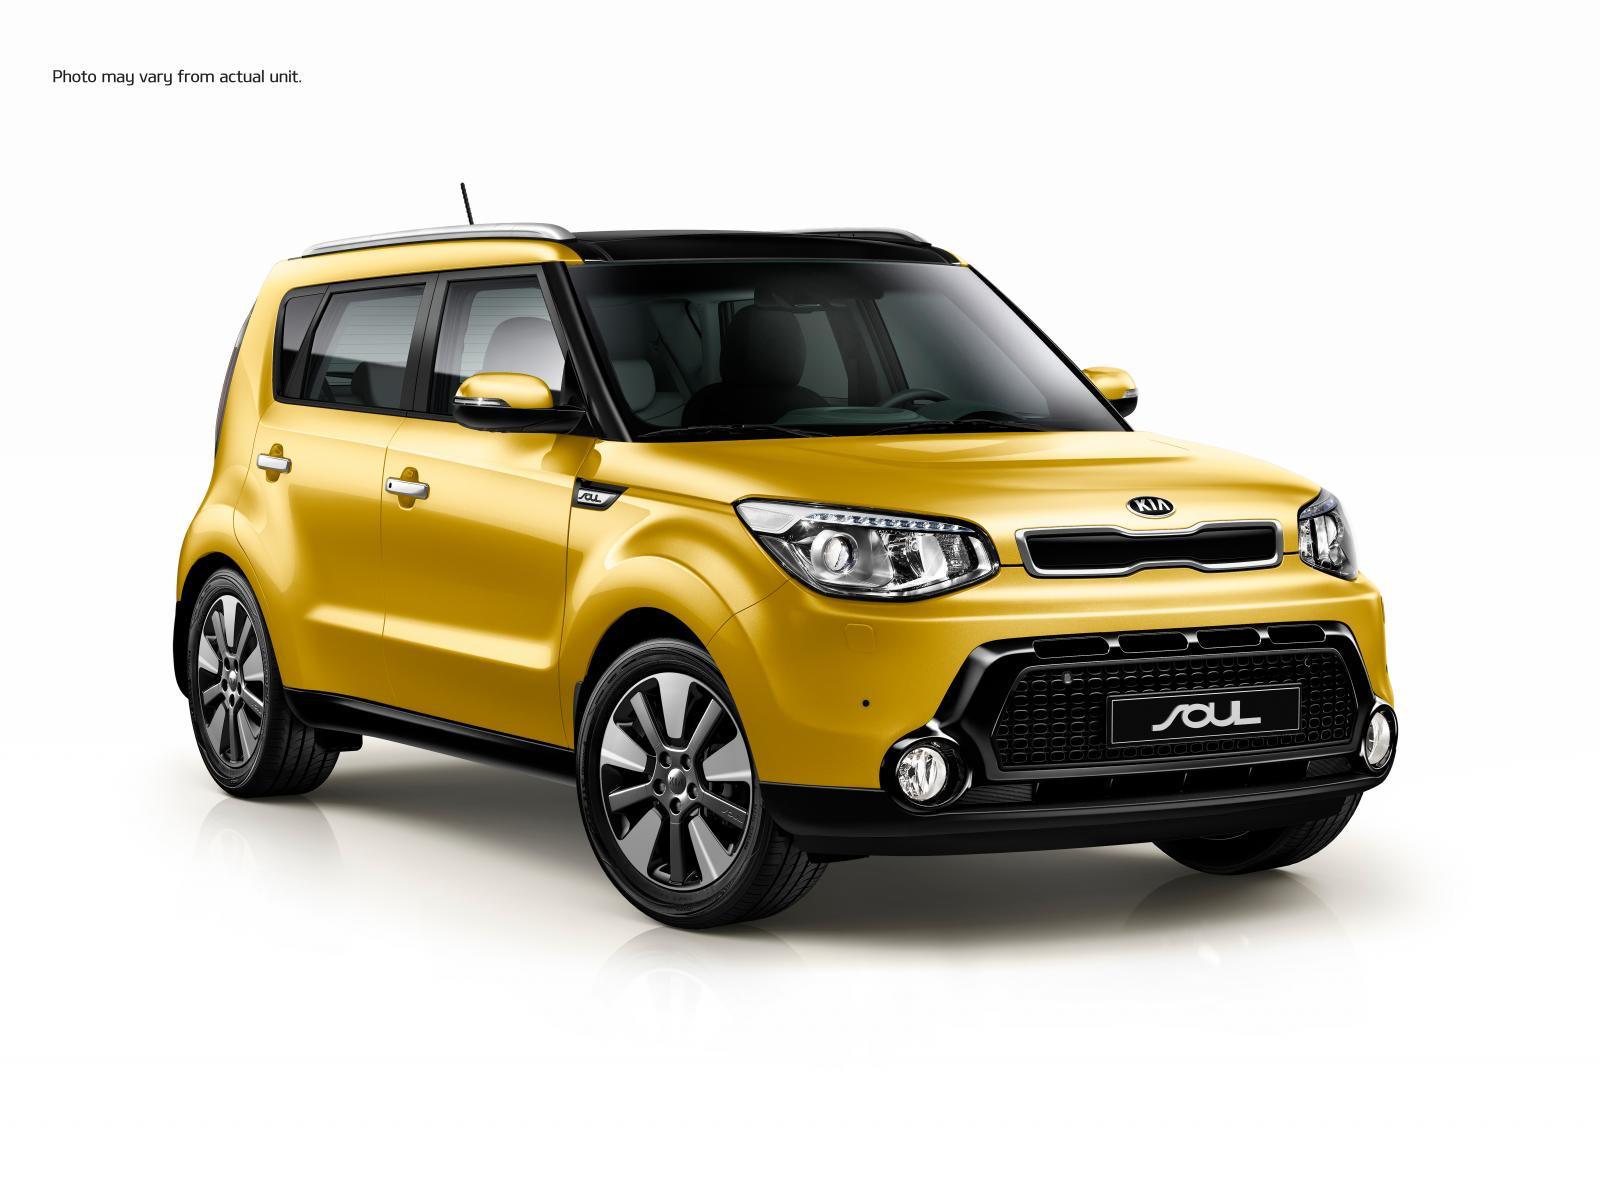 2015 kia soul information and photos zombiedrive. Black Bedroom Furniture Sets. Home Design Ideas